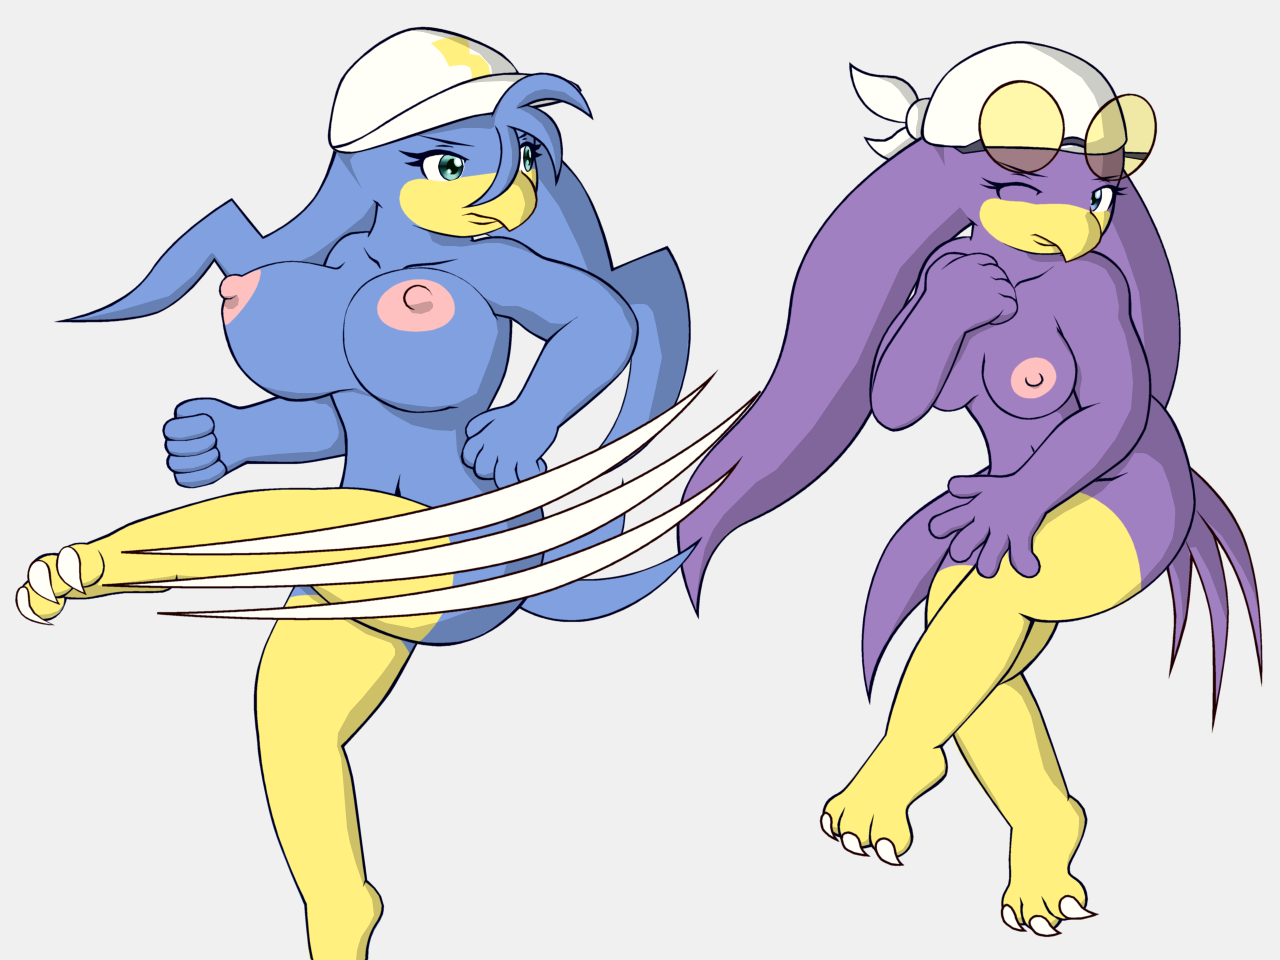 the sonic swallow wave riders Phoenix wright april may porn